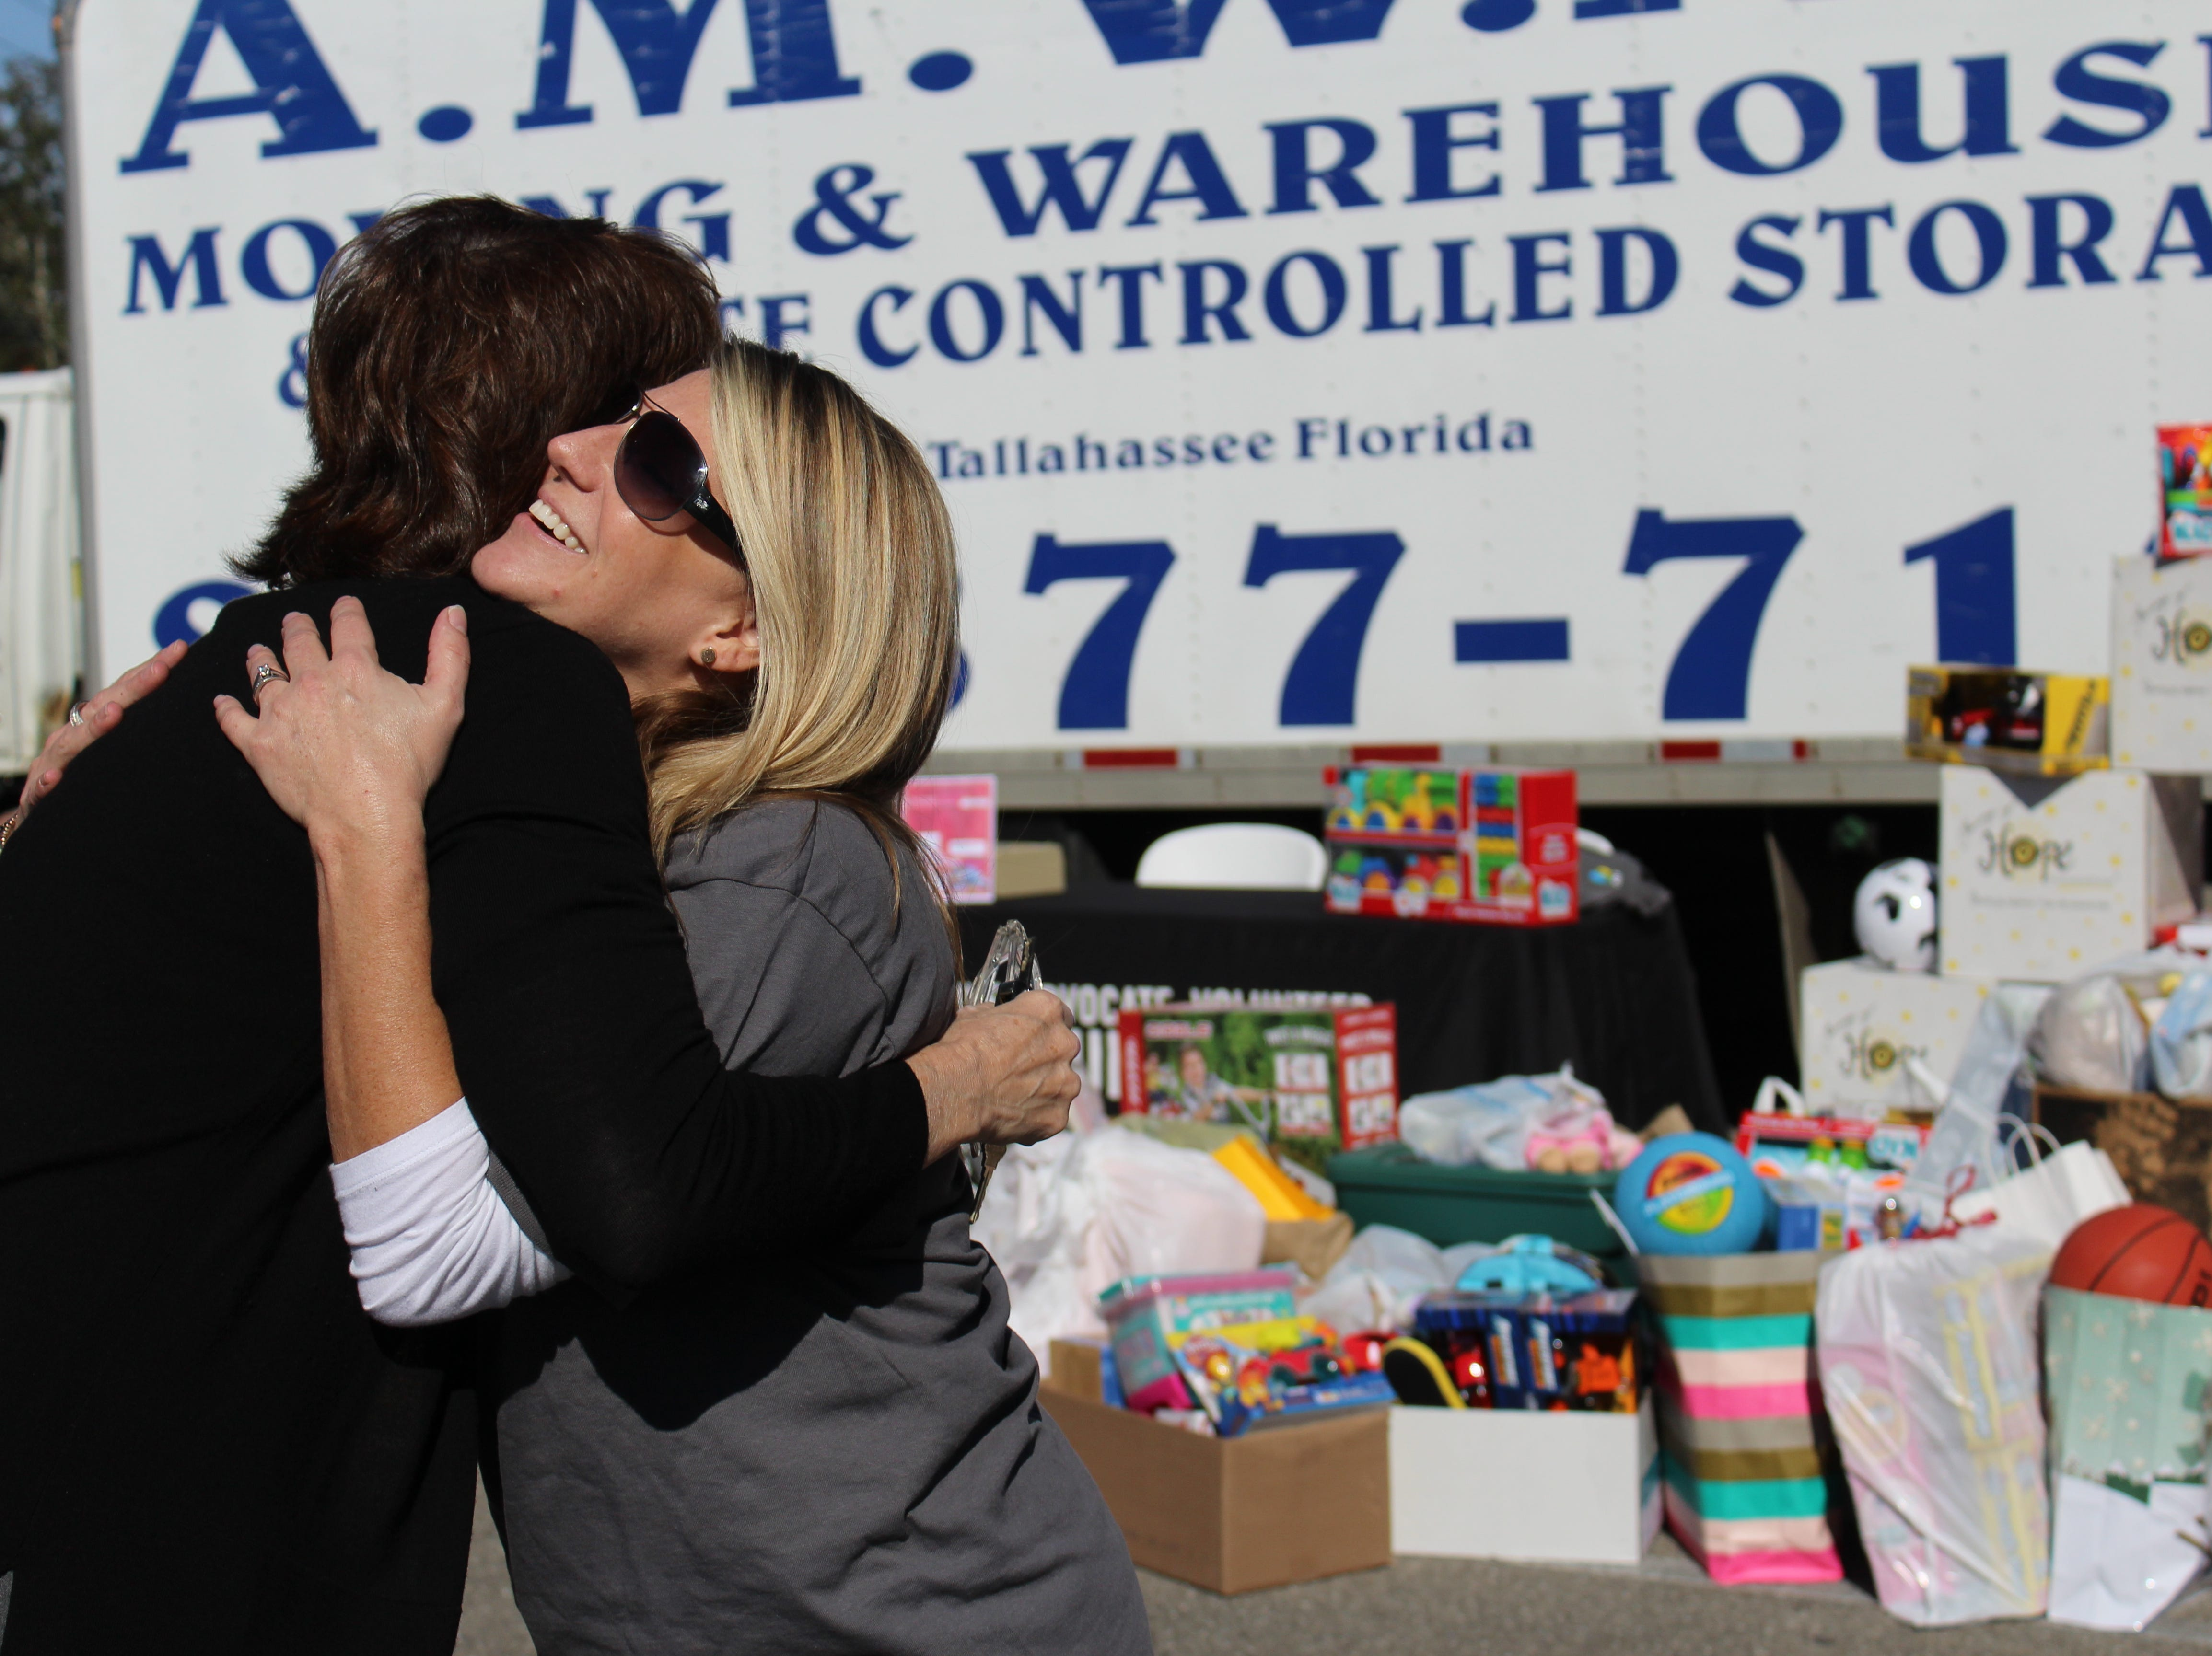 Toy drive rebuilds hope for families affected by Hurricane Michael